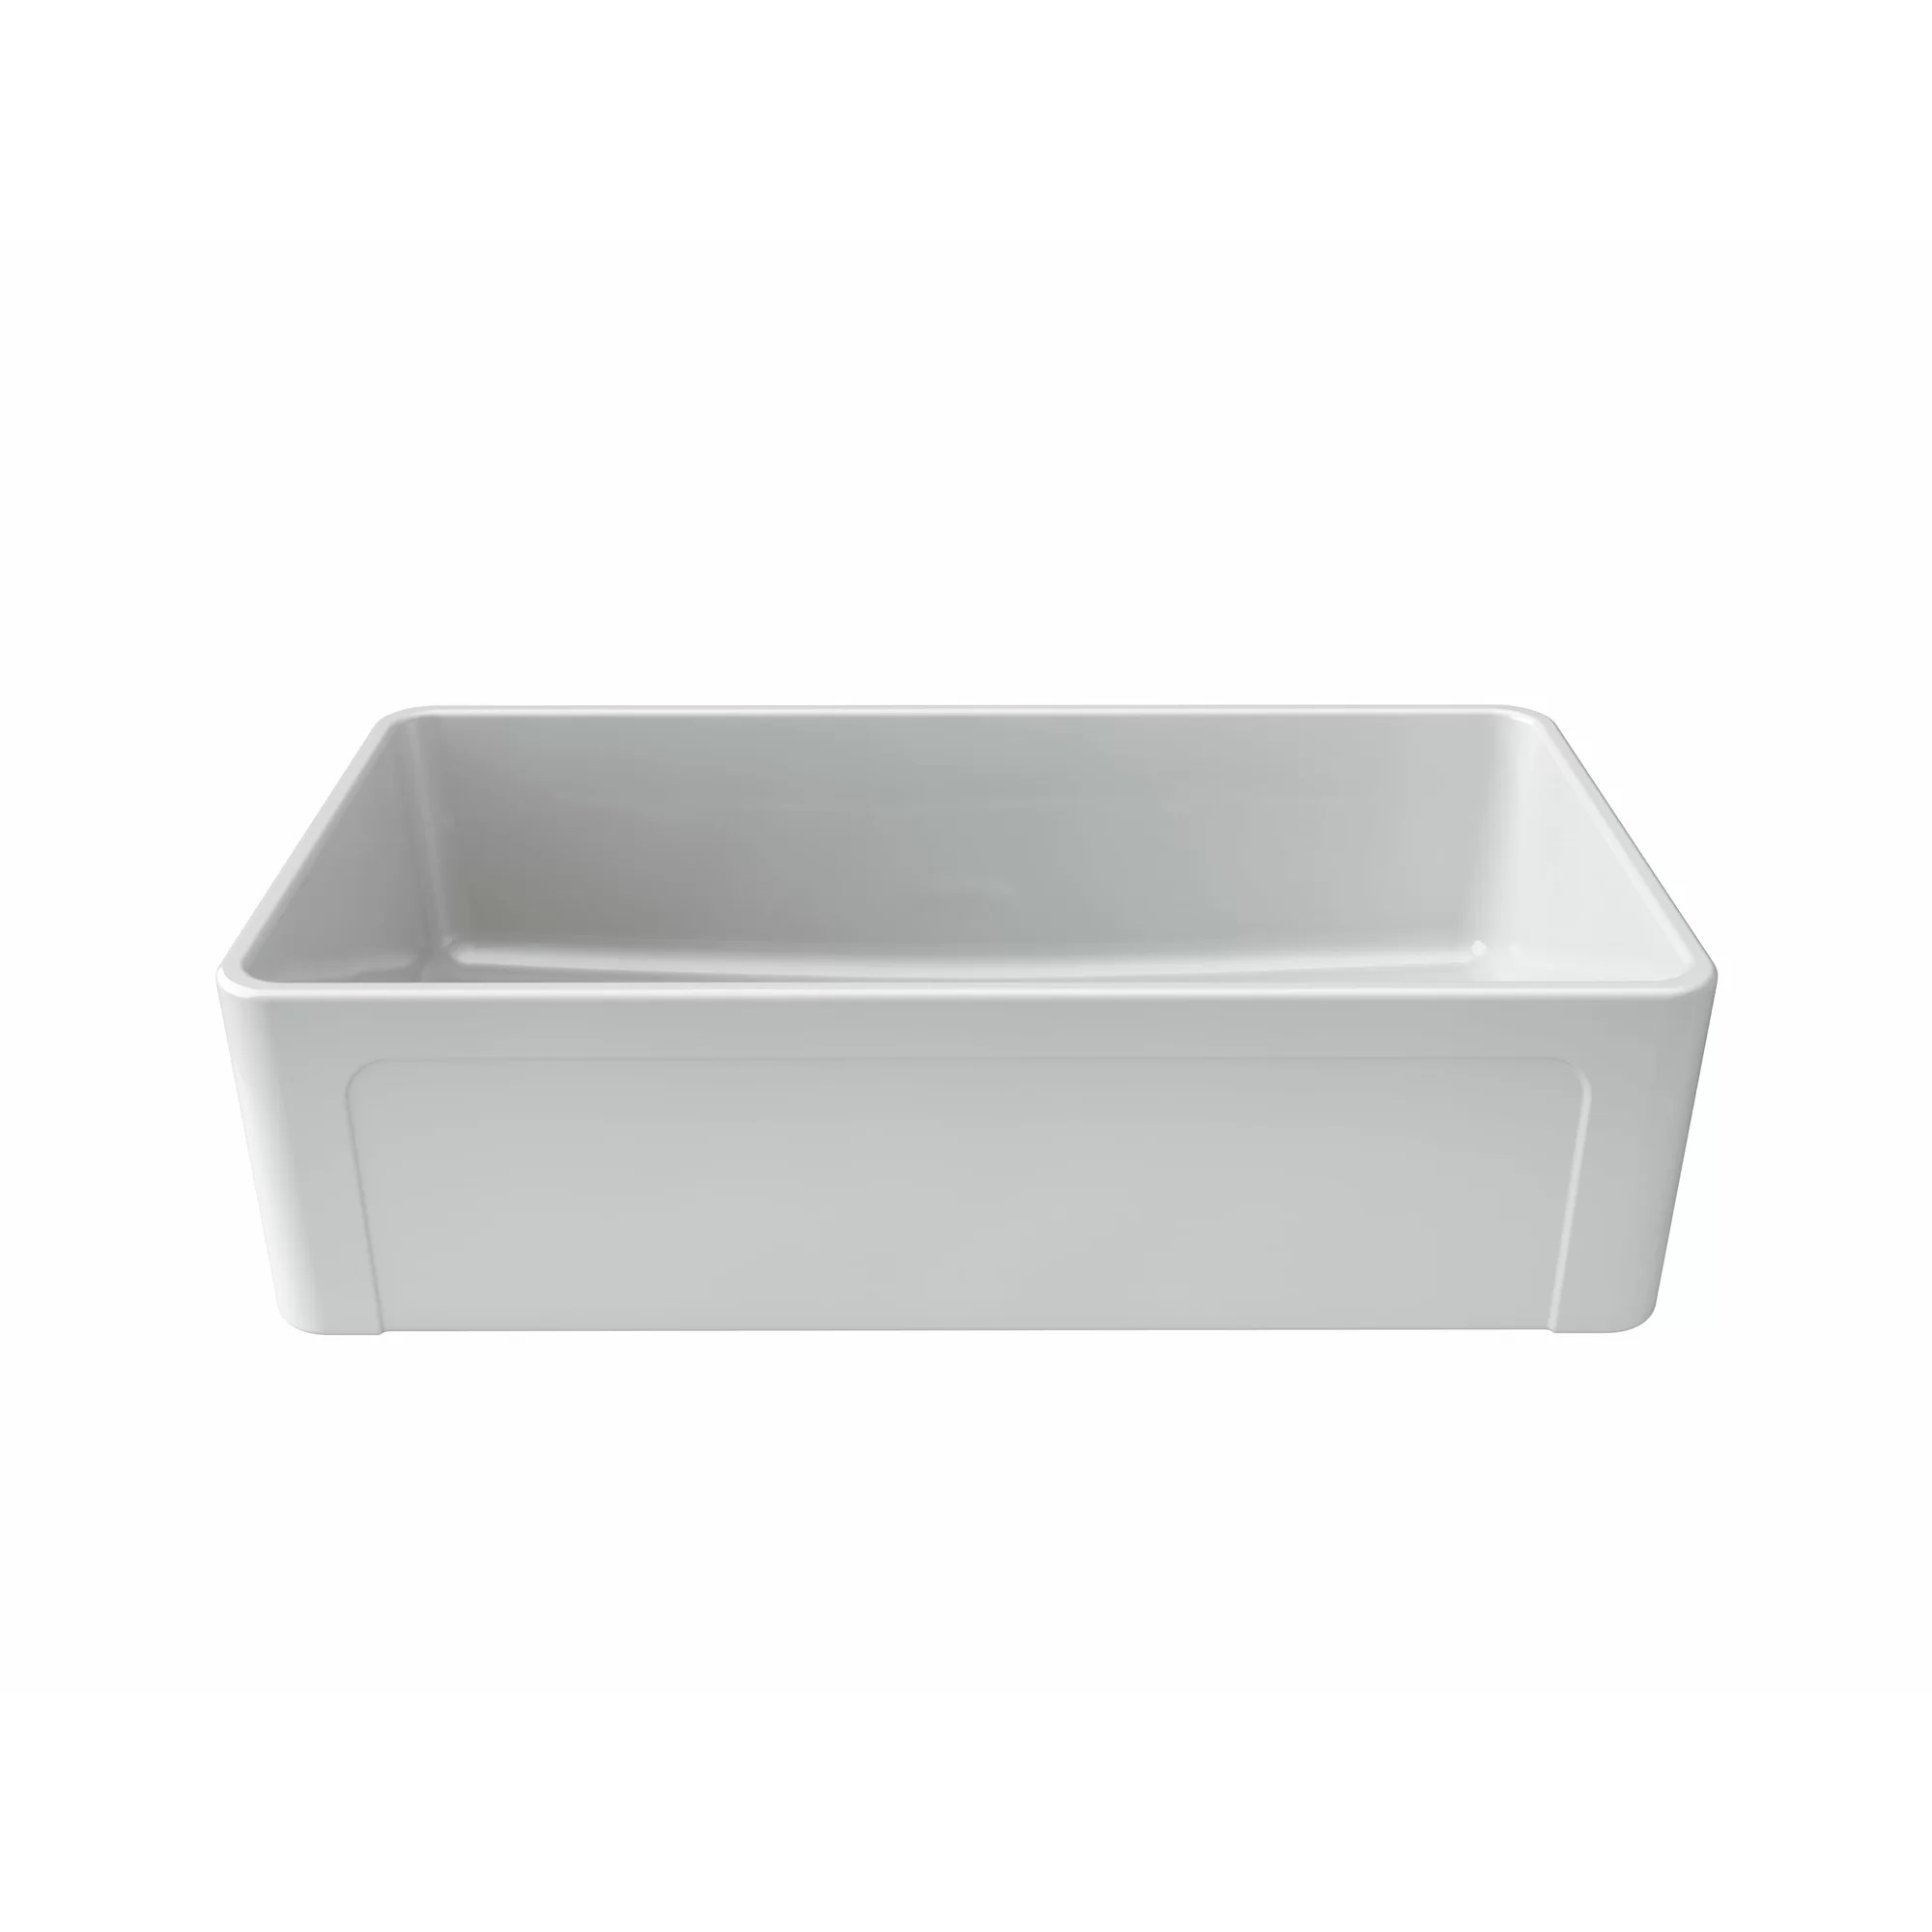 Latoscana Farmhouse Sink 36 Latoscana 36 Quot X 19 Quot Fireclay Kitchen Sink Wayfair